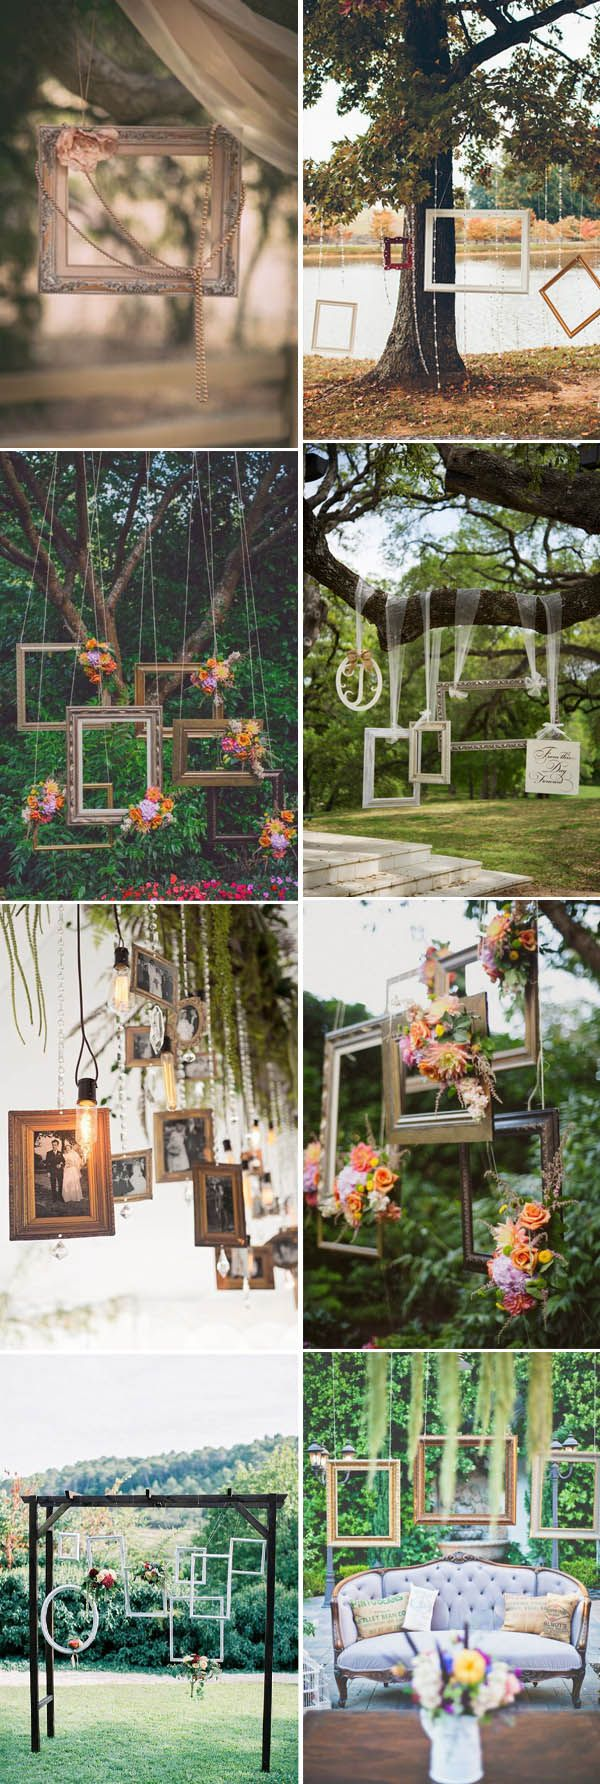 There are many creative DIY ideas for a vintage wedding. For instance, we can easily use some old and vintage  photo frames to DIY  a stylish hanging photo frames decor with pearls and flowers, vintage frame seating c...